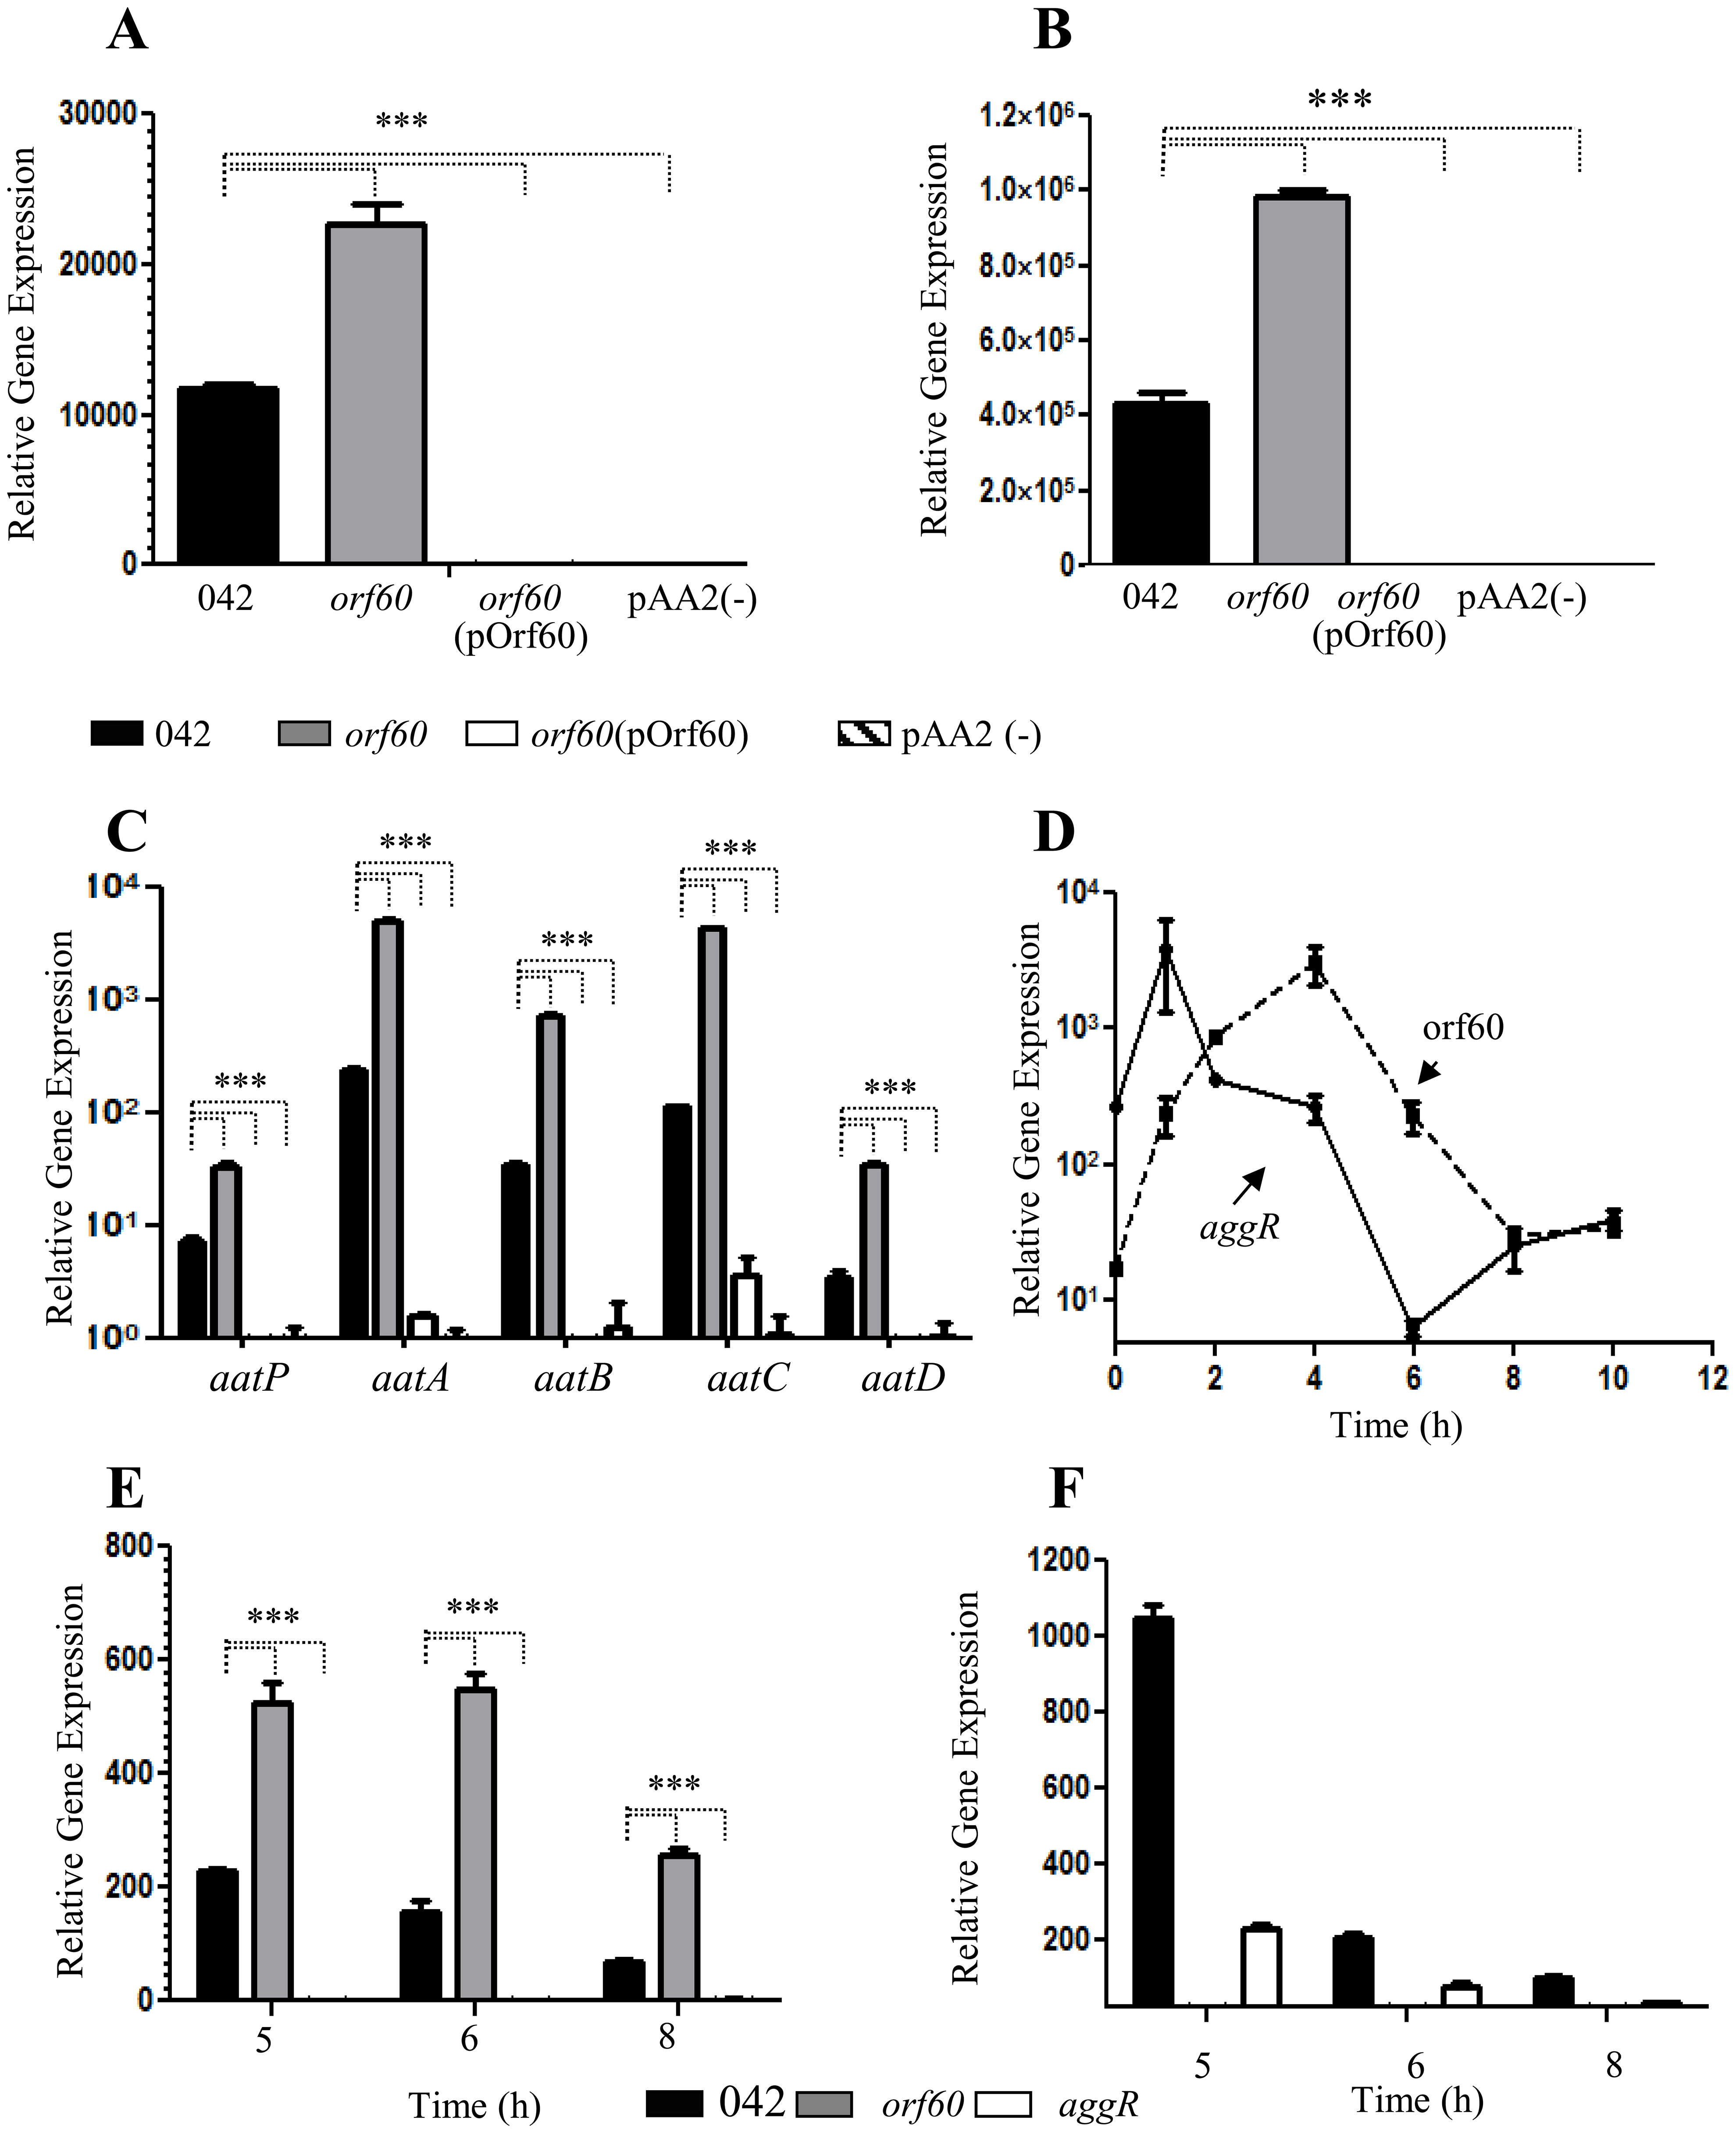 Orf60 represses expression of AggR and its regulon.